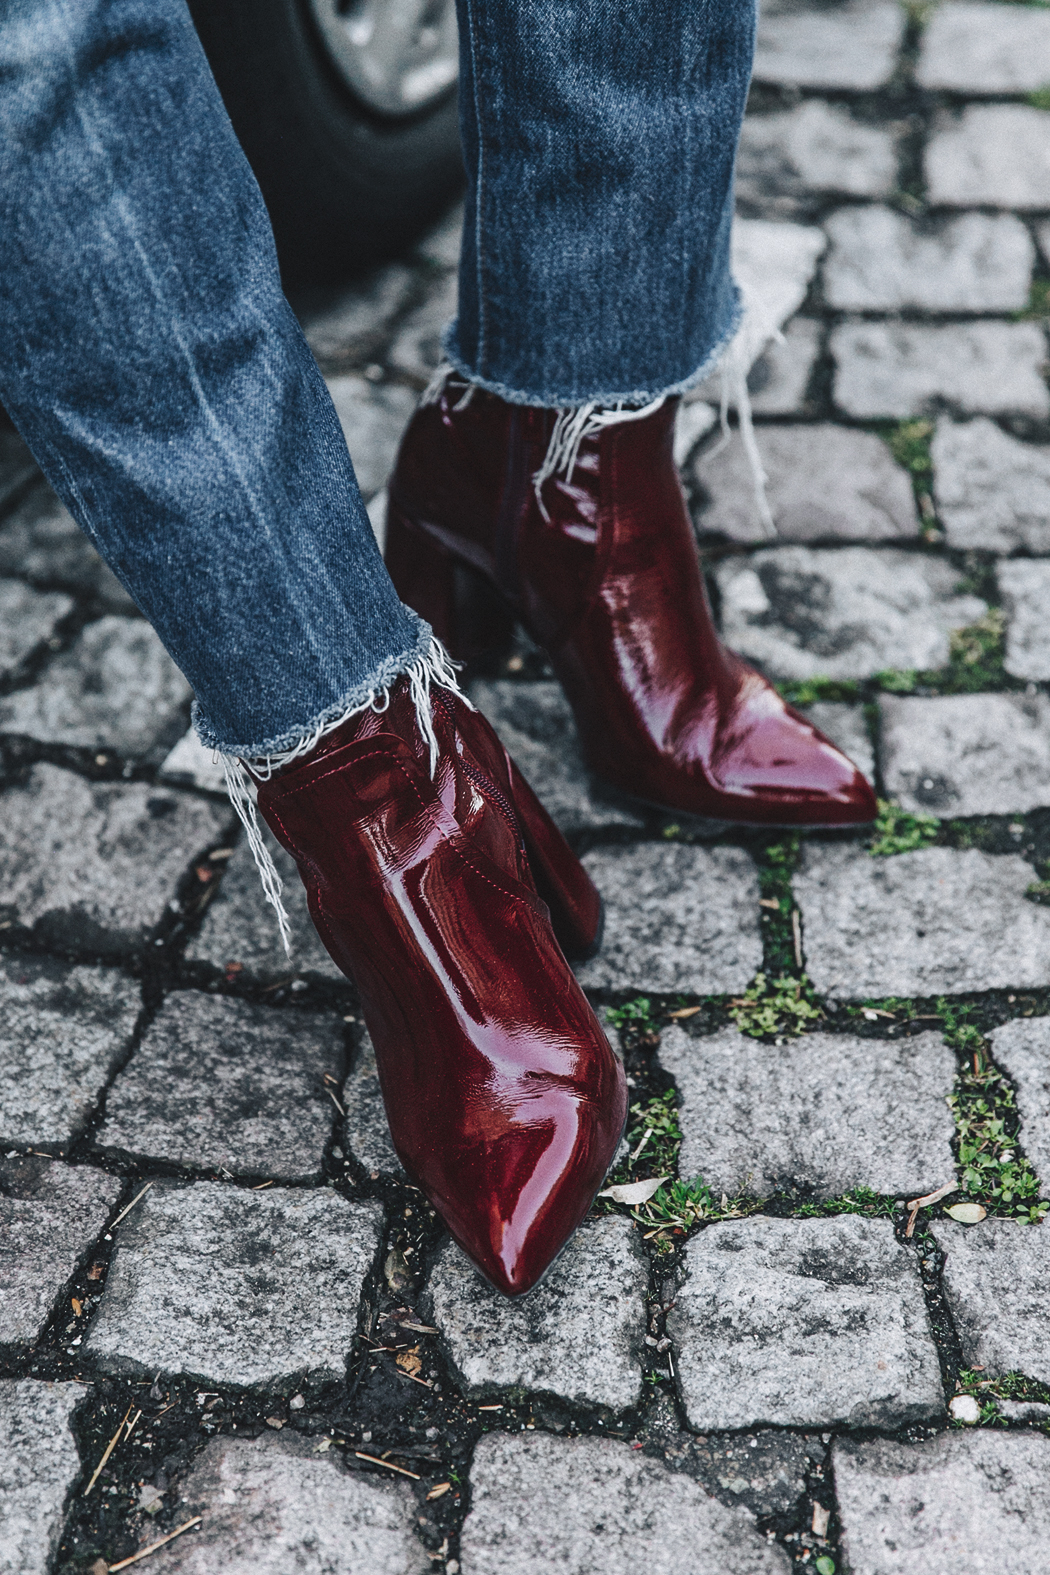 RED-KNITWEAR-Levis-Jeans-Red_Boots-Outfit-Street_Style-Levis_Vintage-24